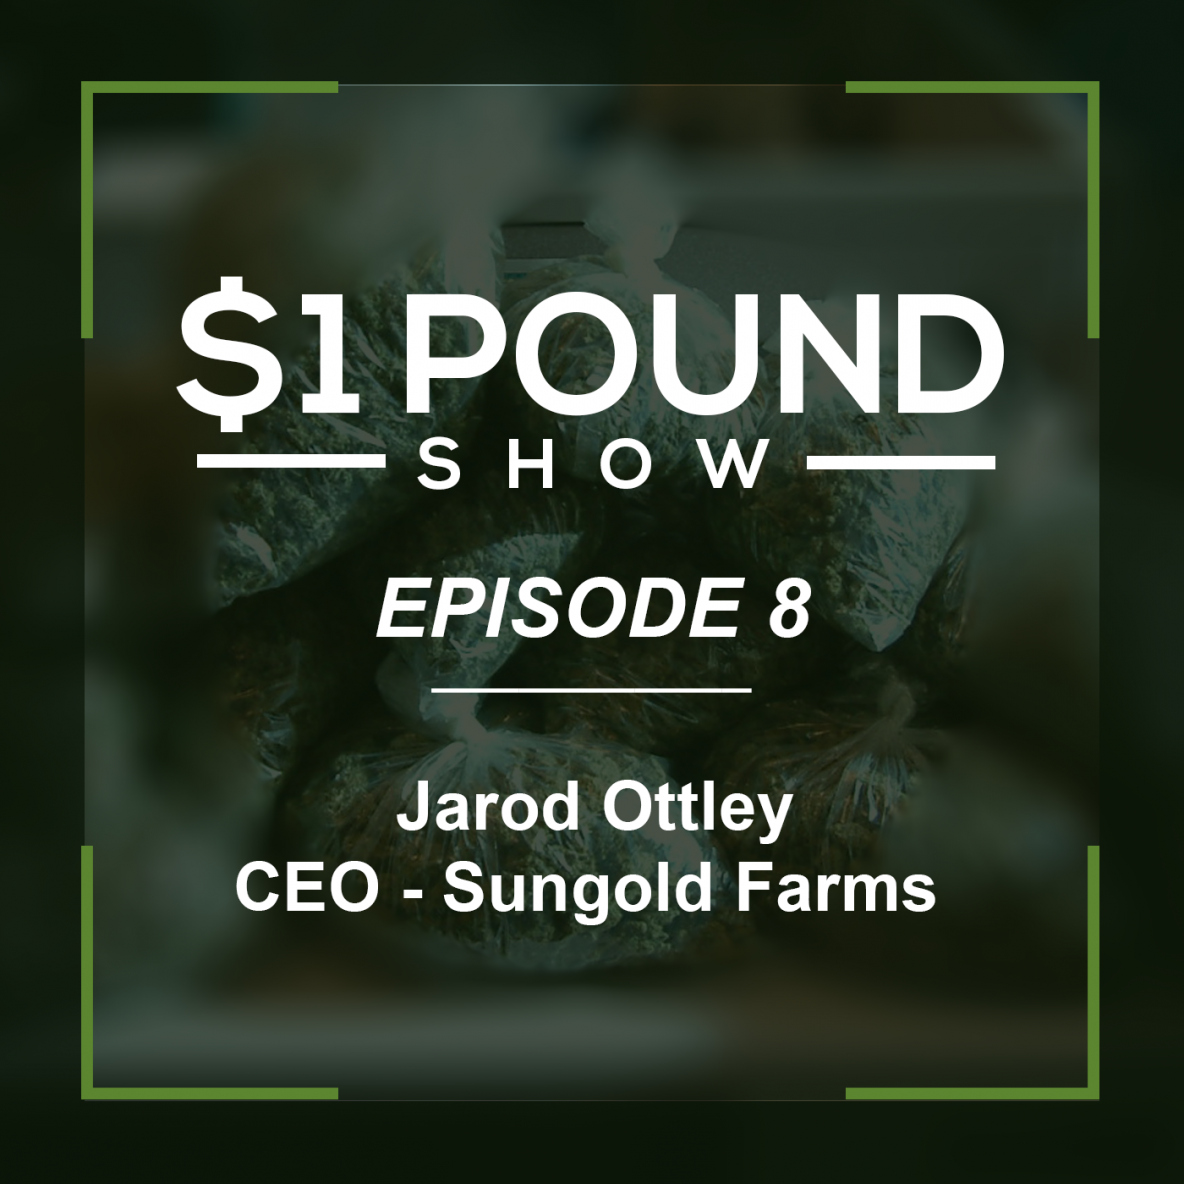 1 Pound Show episode 8